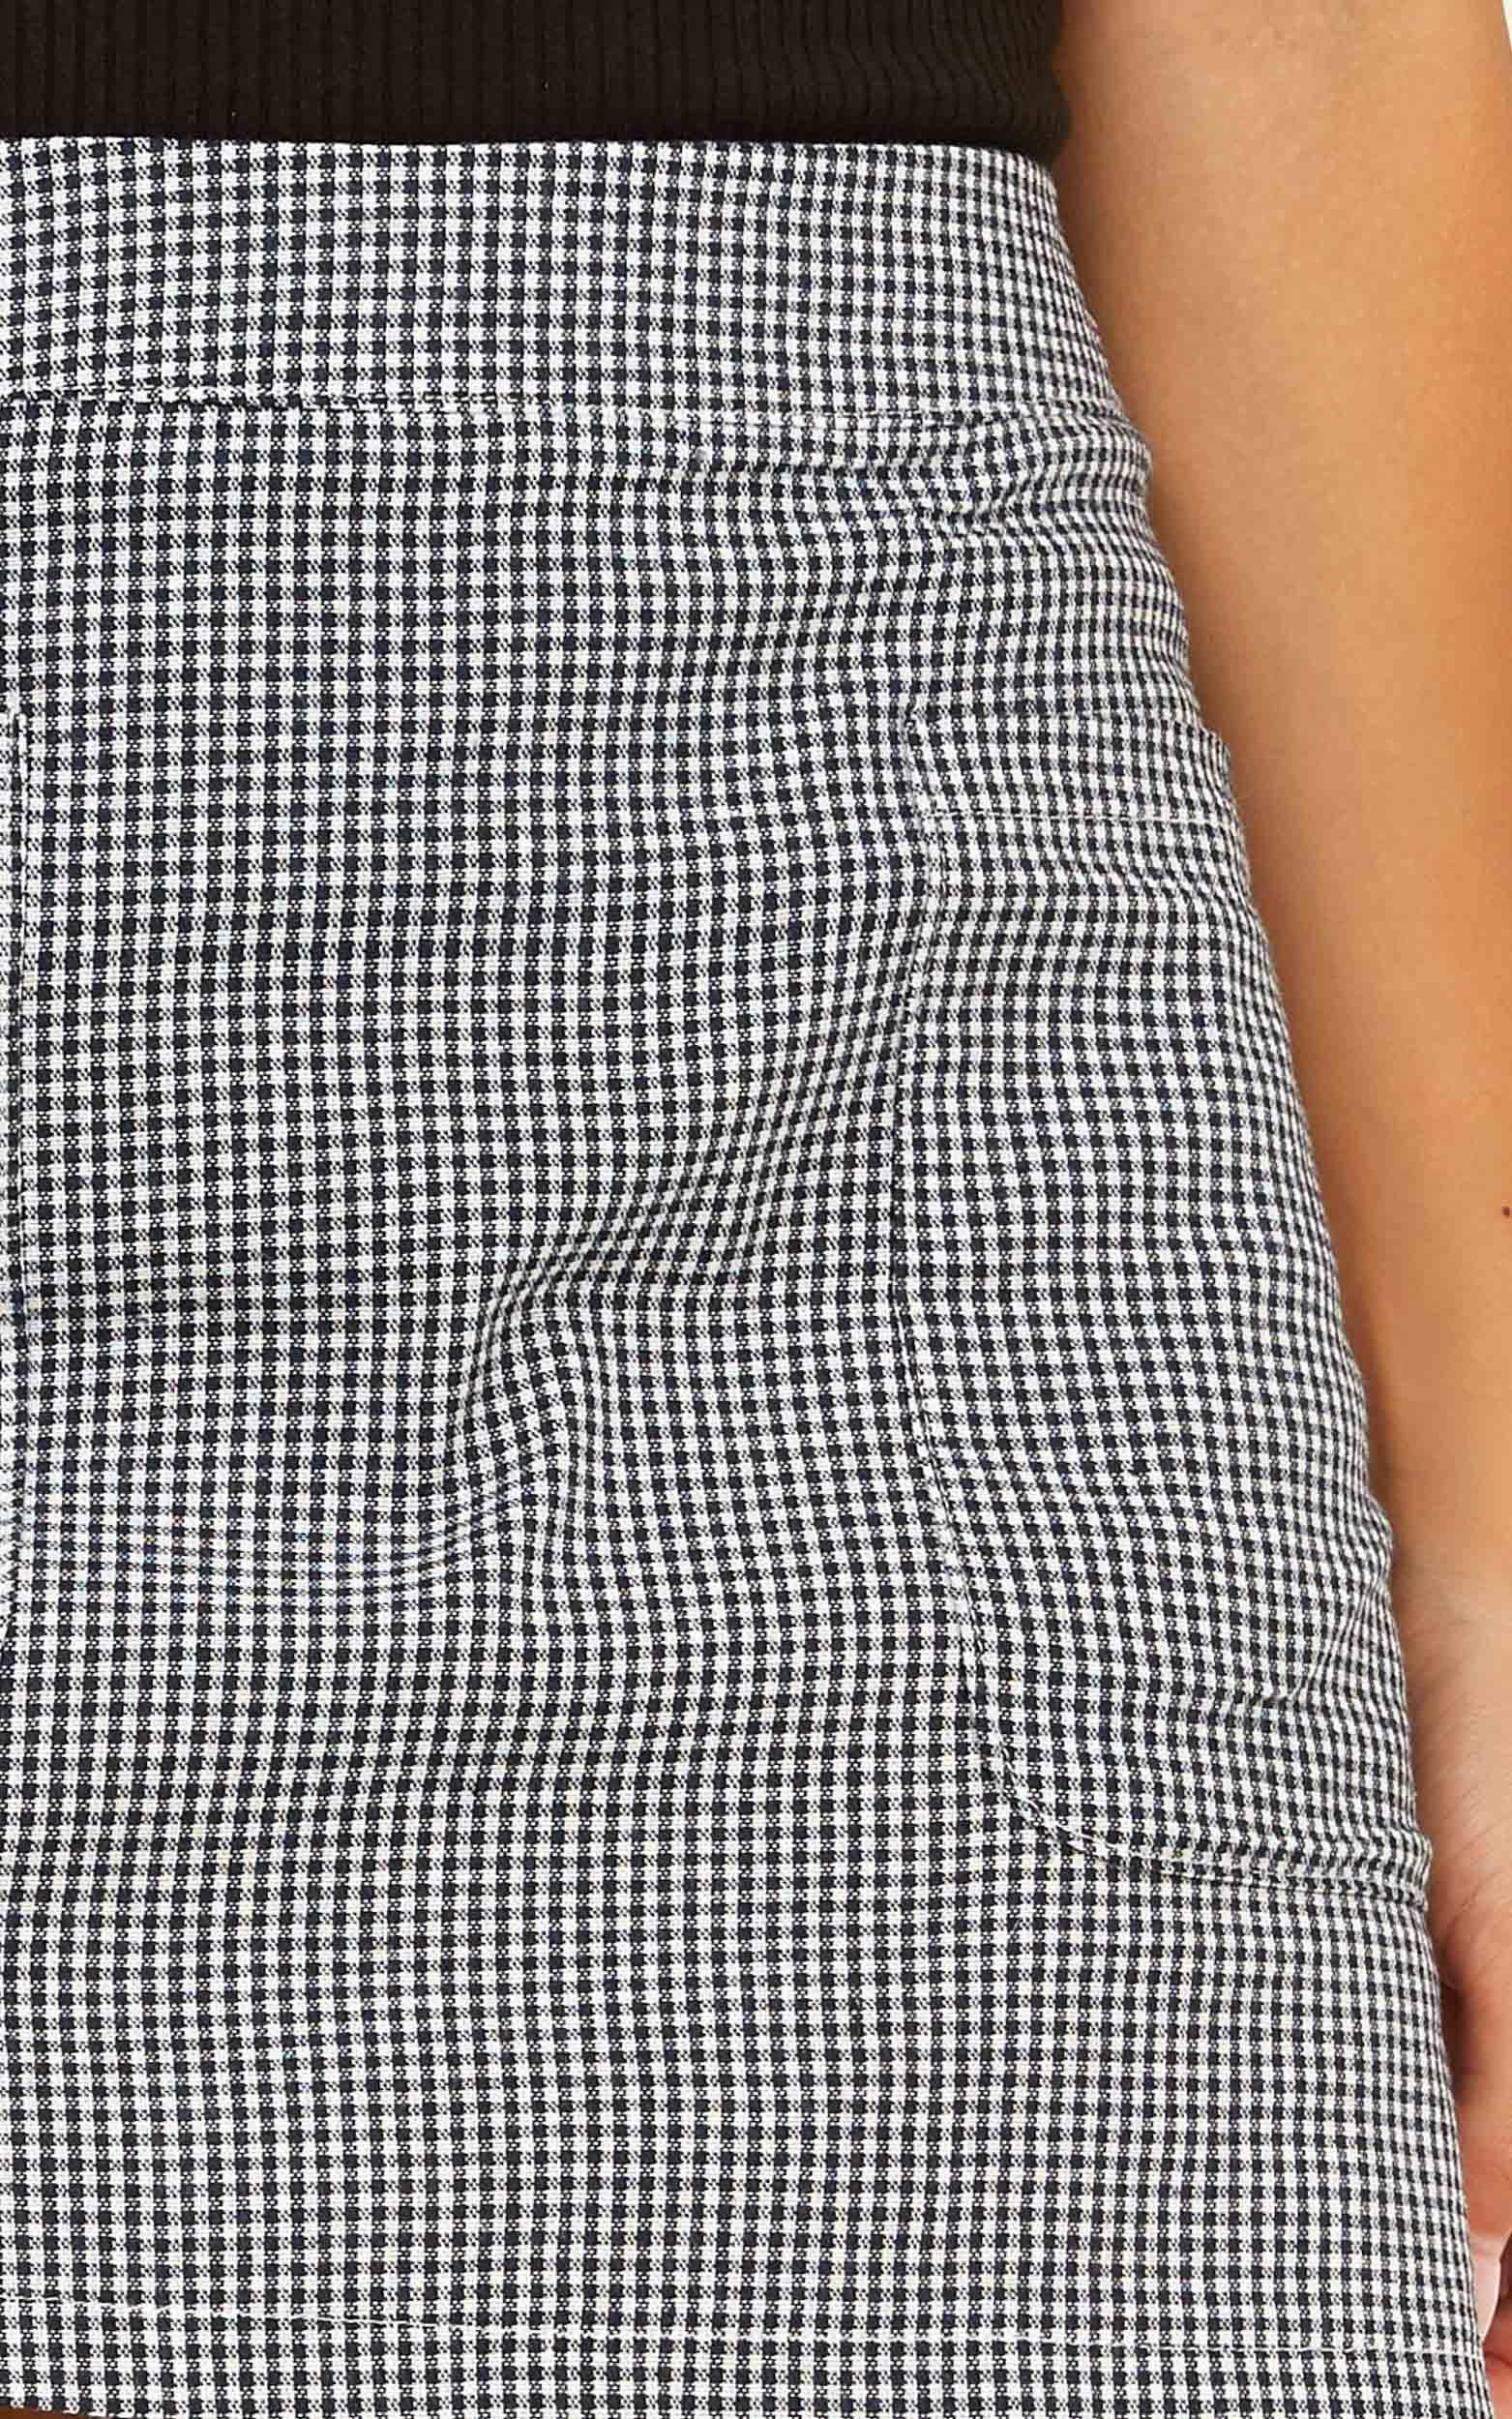 Lean On Me Skirt In Black Gingham - 4 (XXS), Black, hi-res image number null